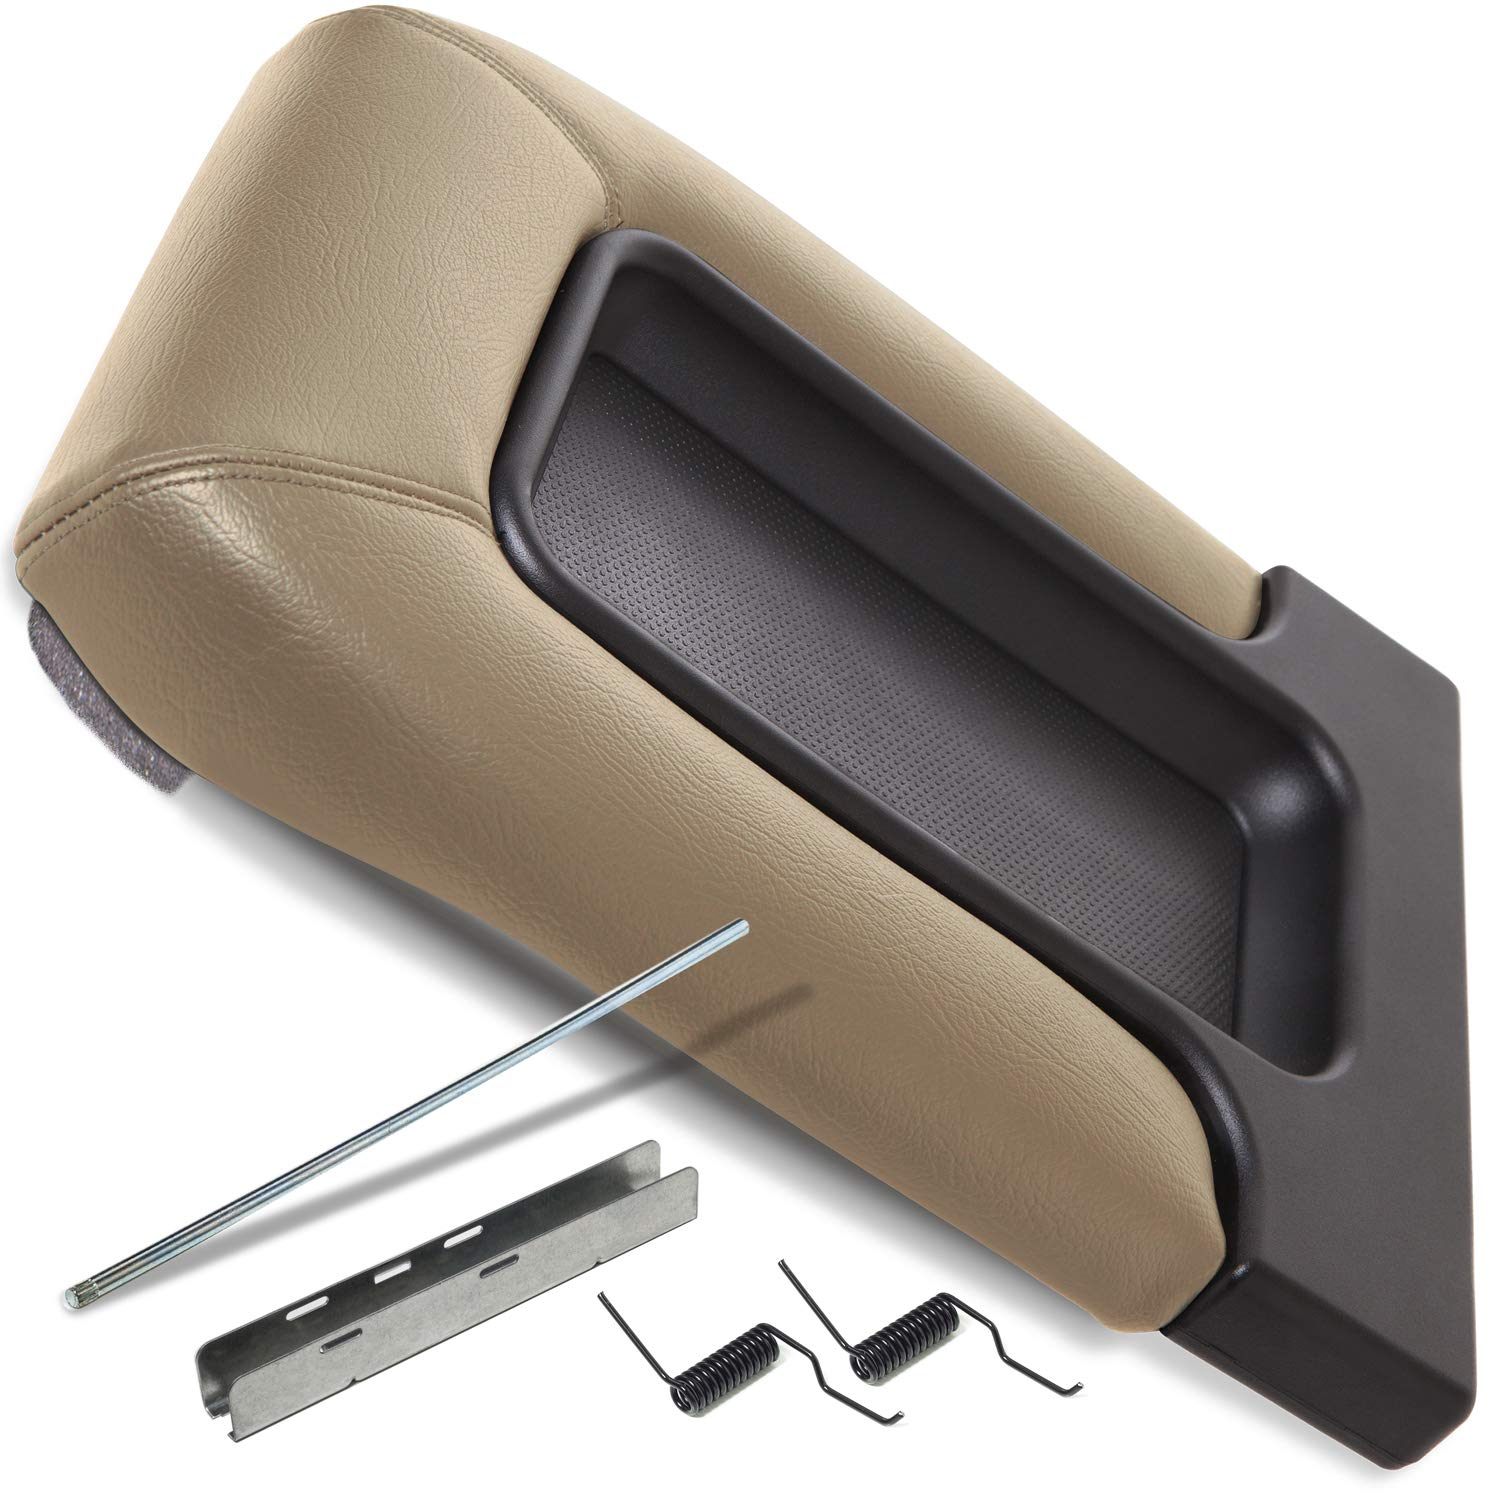 Center Console Lid Kit for Select GM Vehicles - Replaces 19127366 - Beige OxGord CCLK-CHGM-001-BG